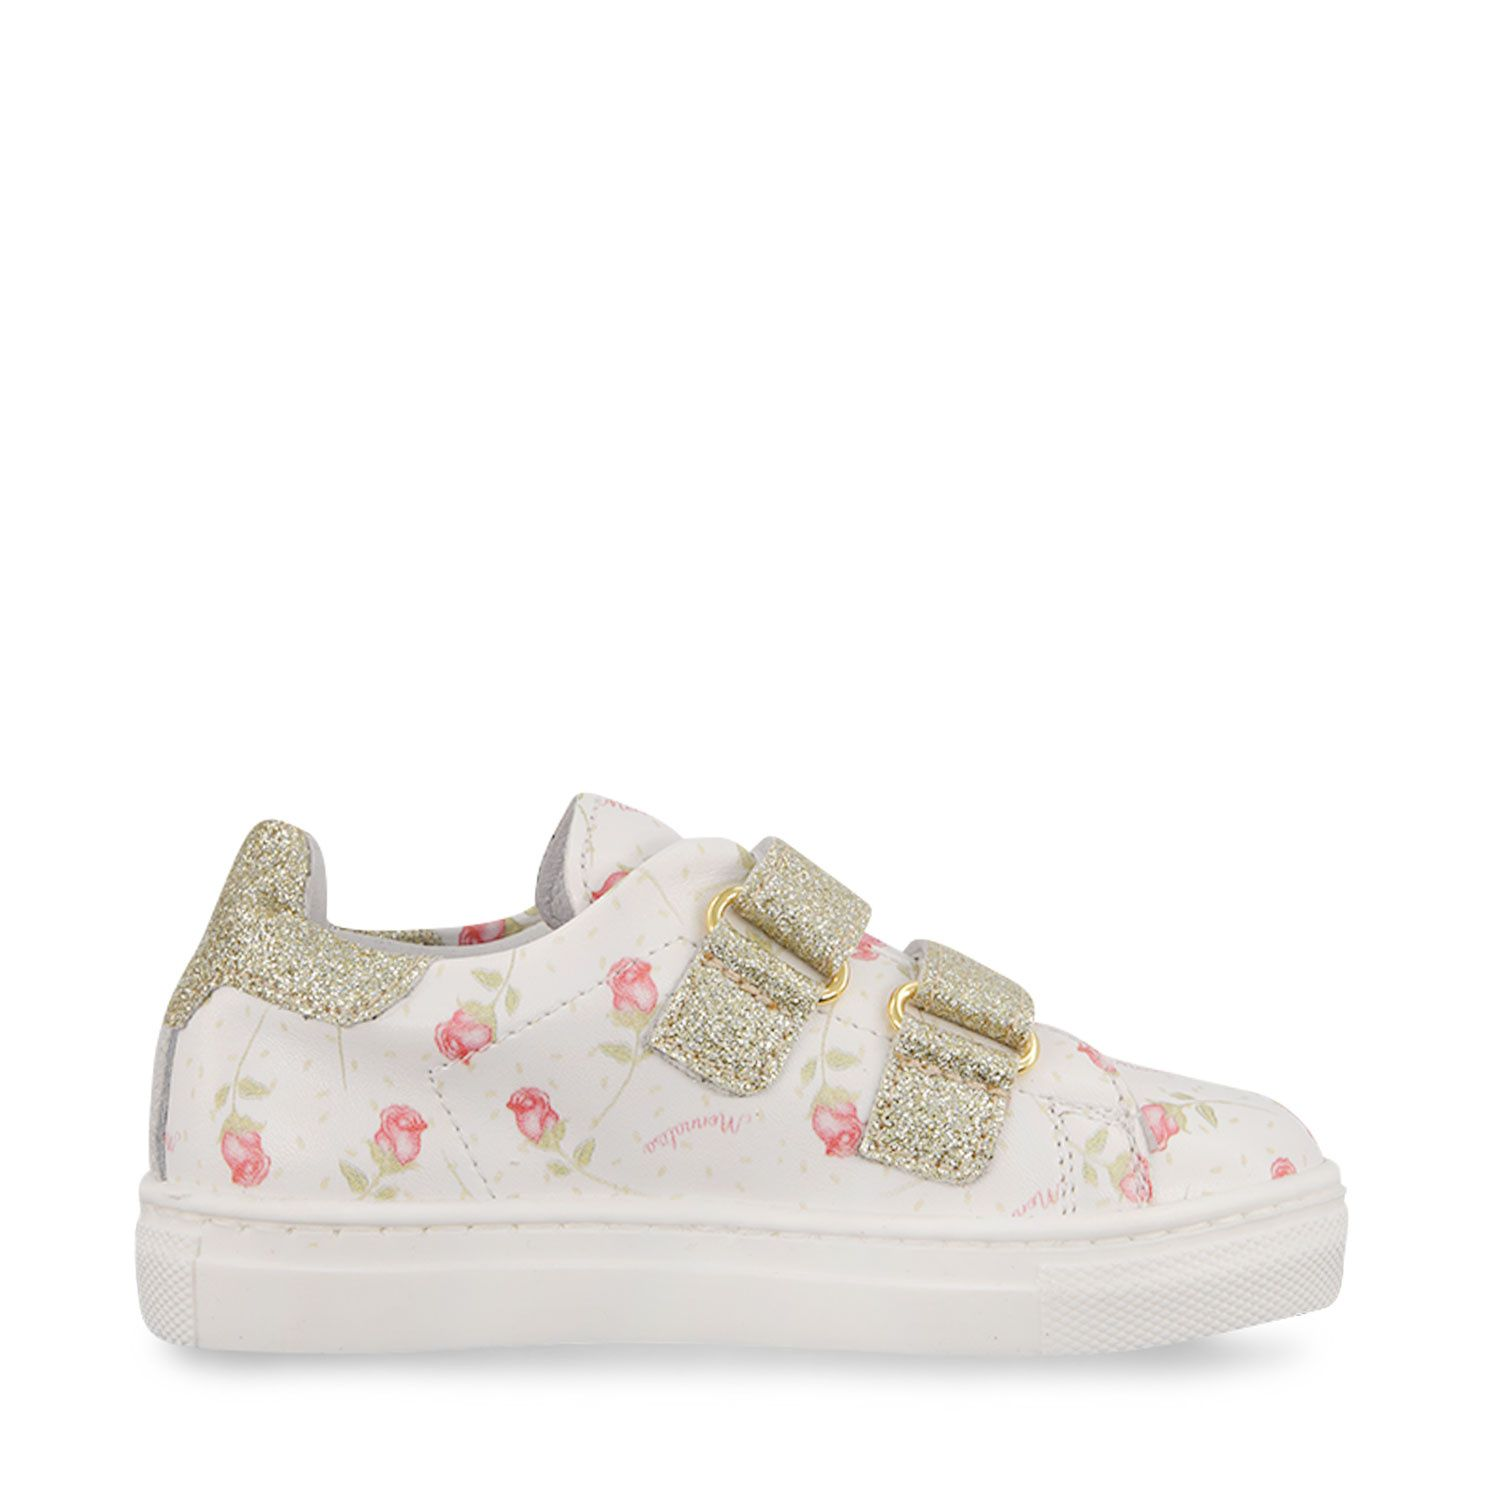 Picture of MonnaLisa 837003 kids sneakers white